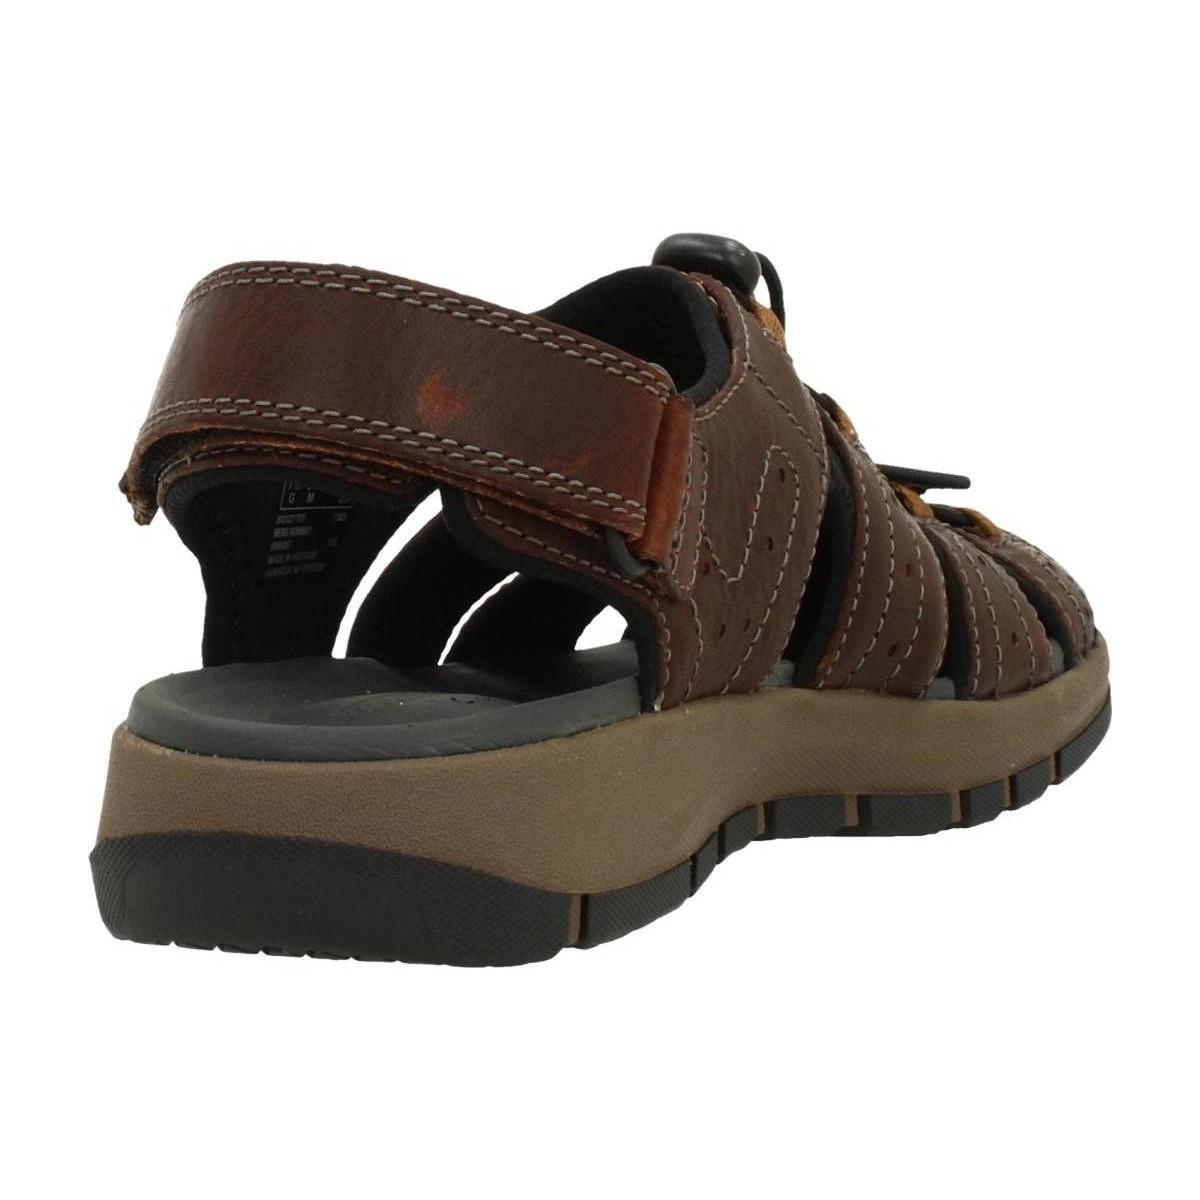 9cba6663 Clarks Brixby Cove (dark Brown Leather) Sandals for Men - Lyst